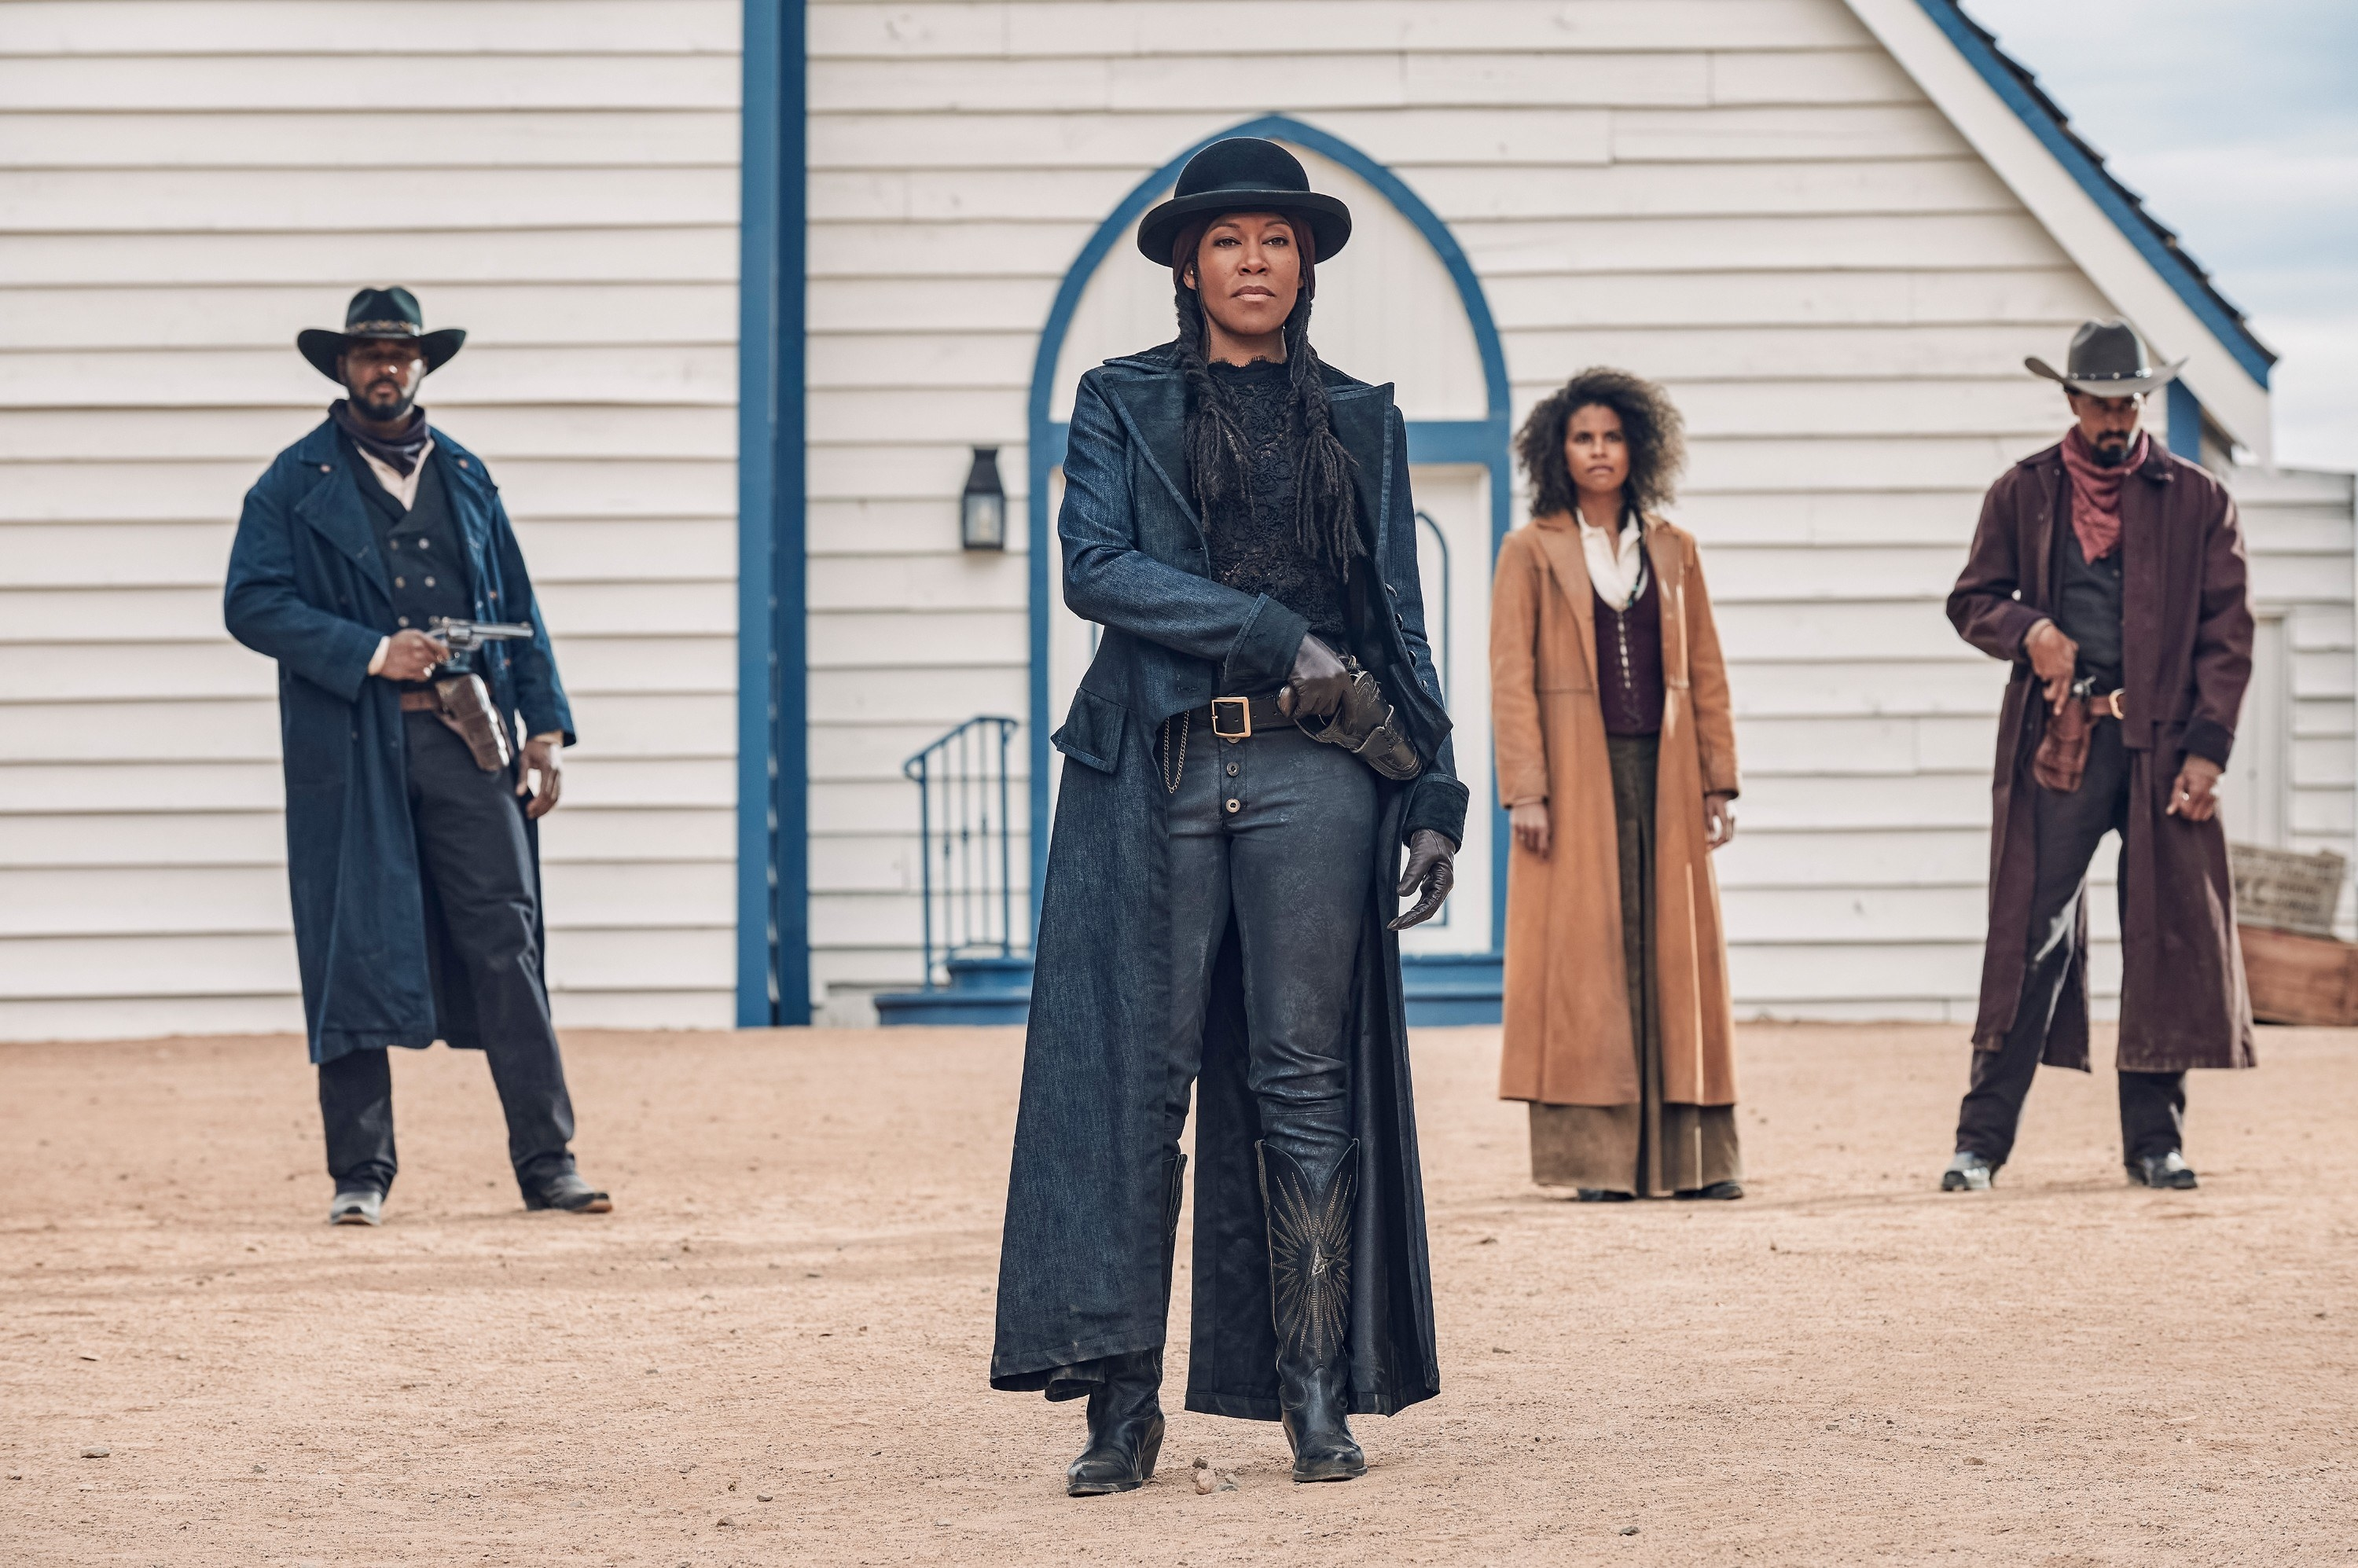 Regina King, Zazie Beets, and two other members of the cast standing in an open space guns at the ready